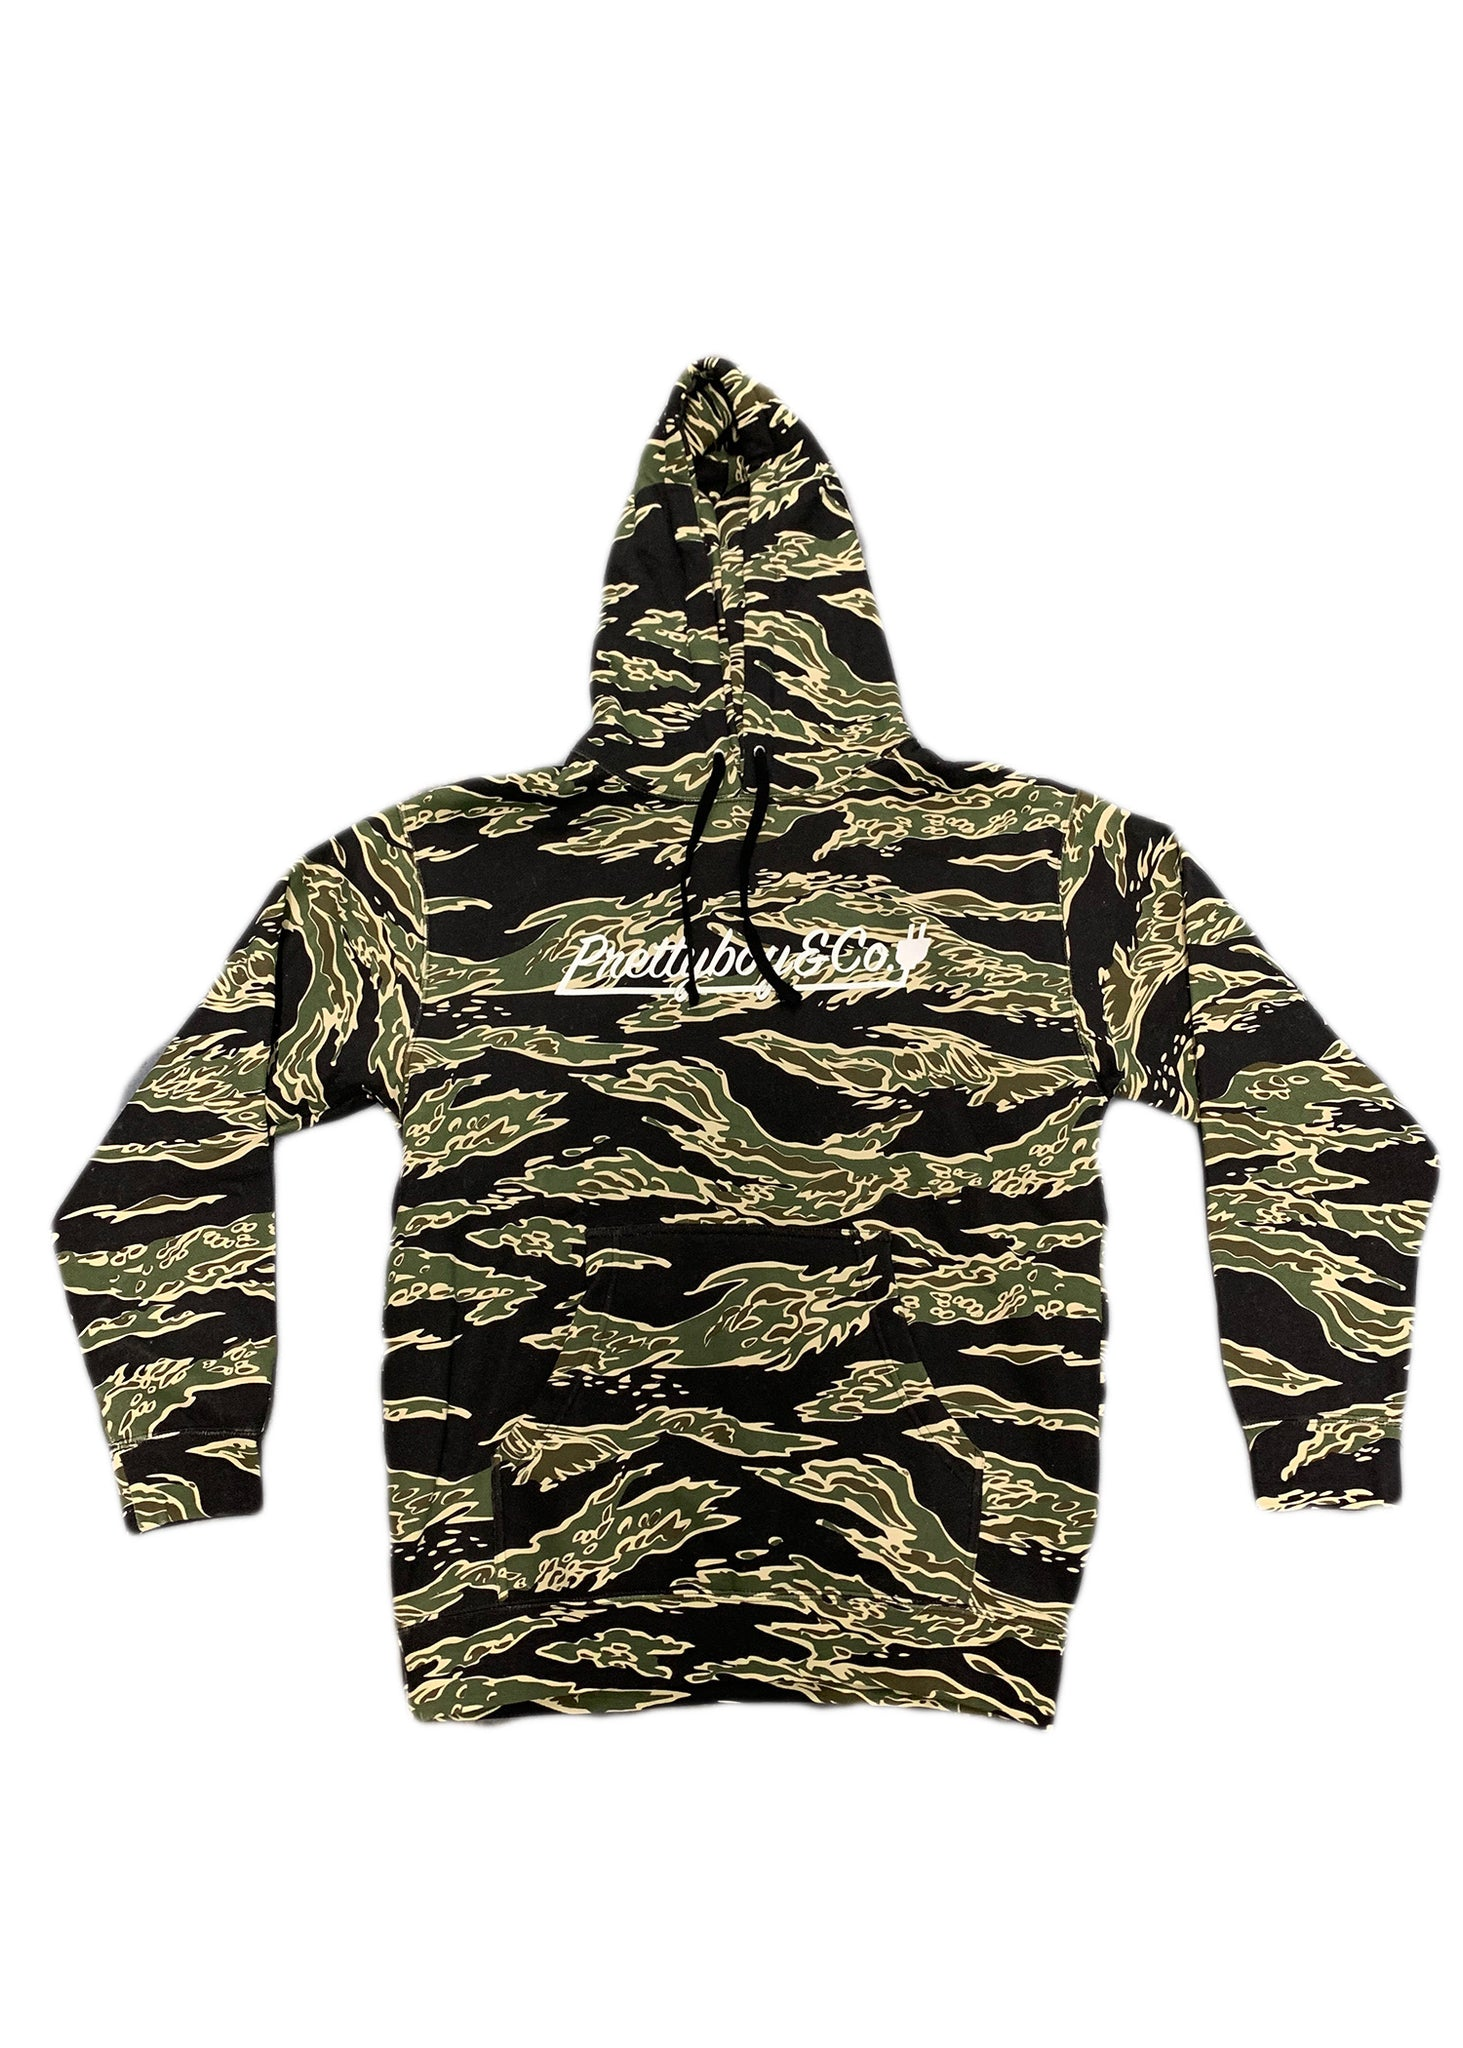 Green Tiger Camo Script Hoodie (Limited)